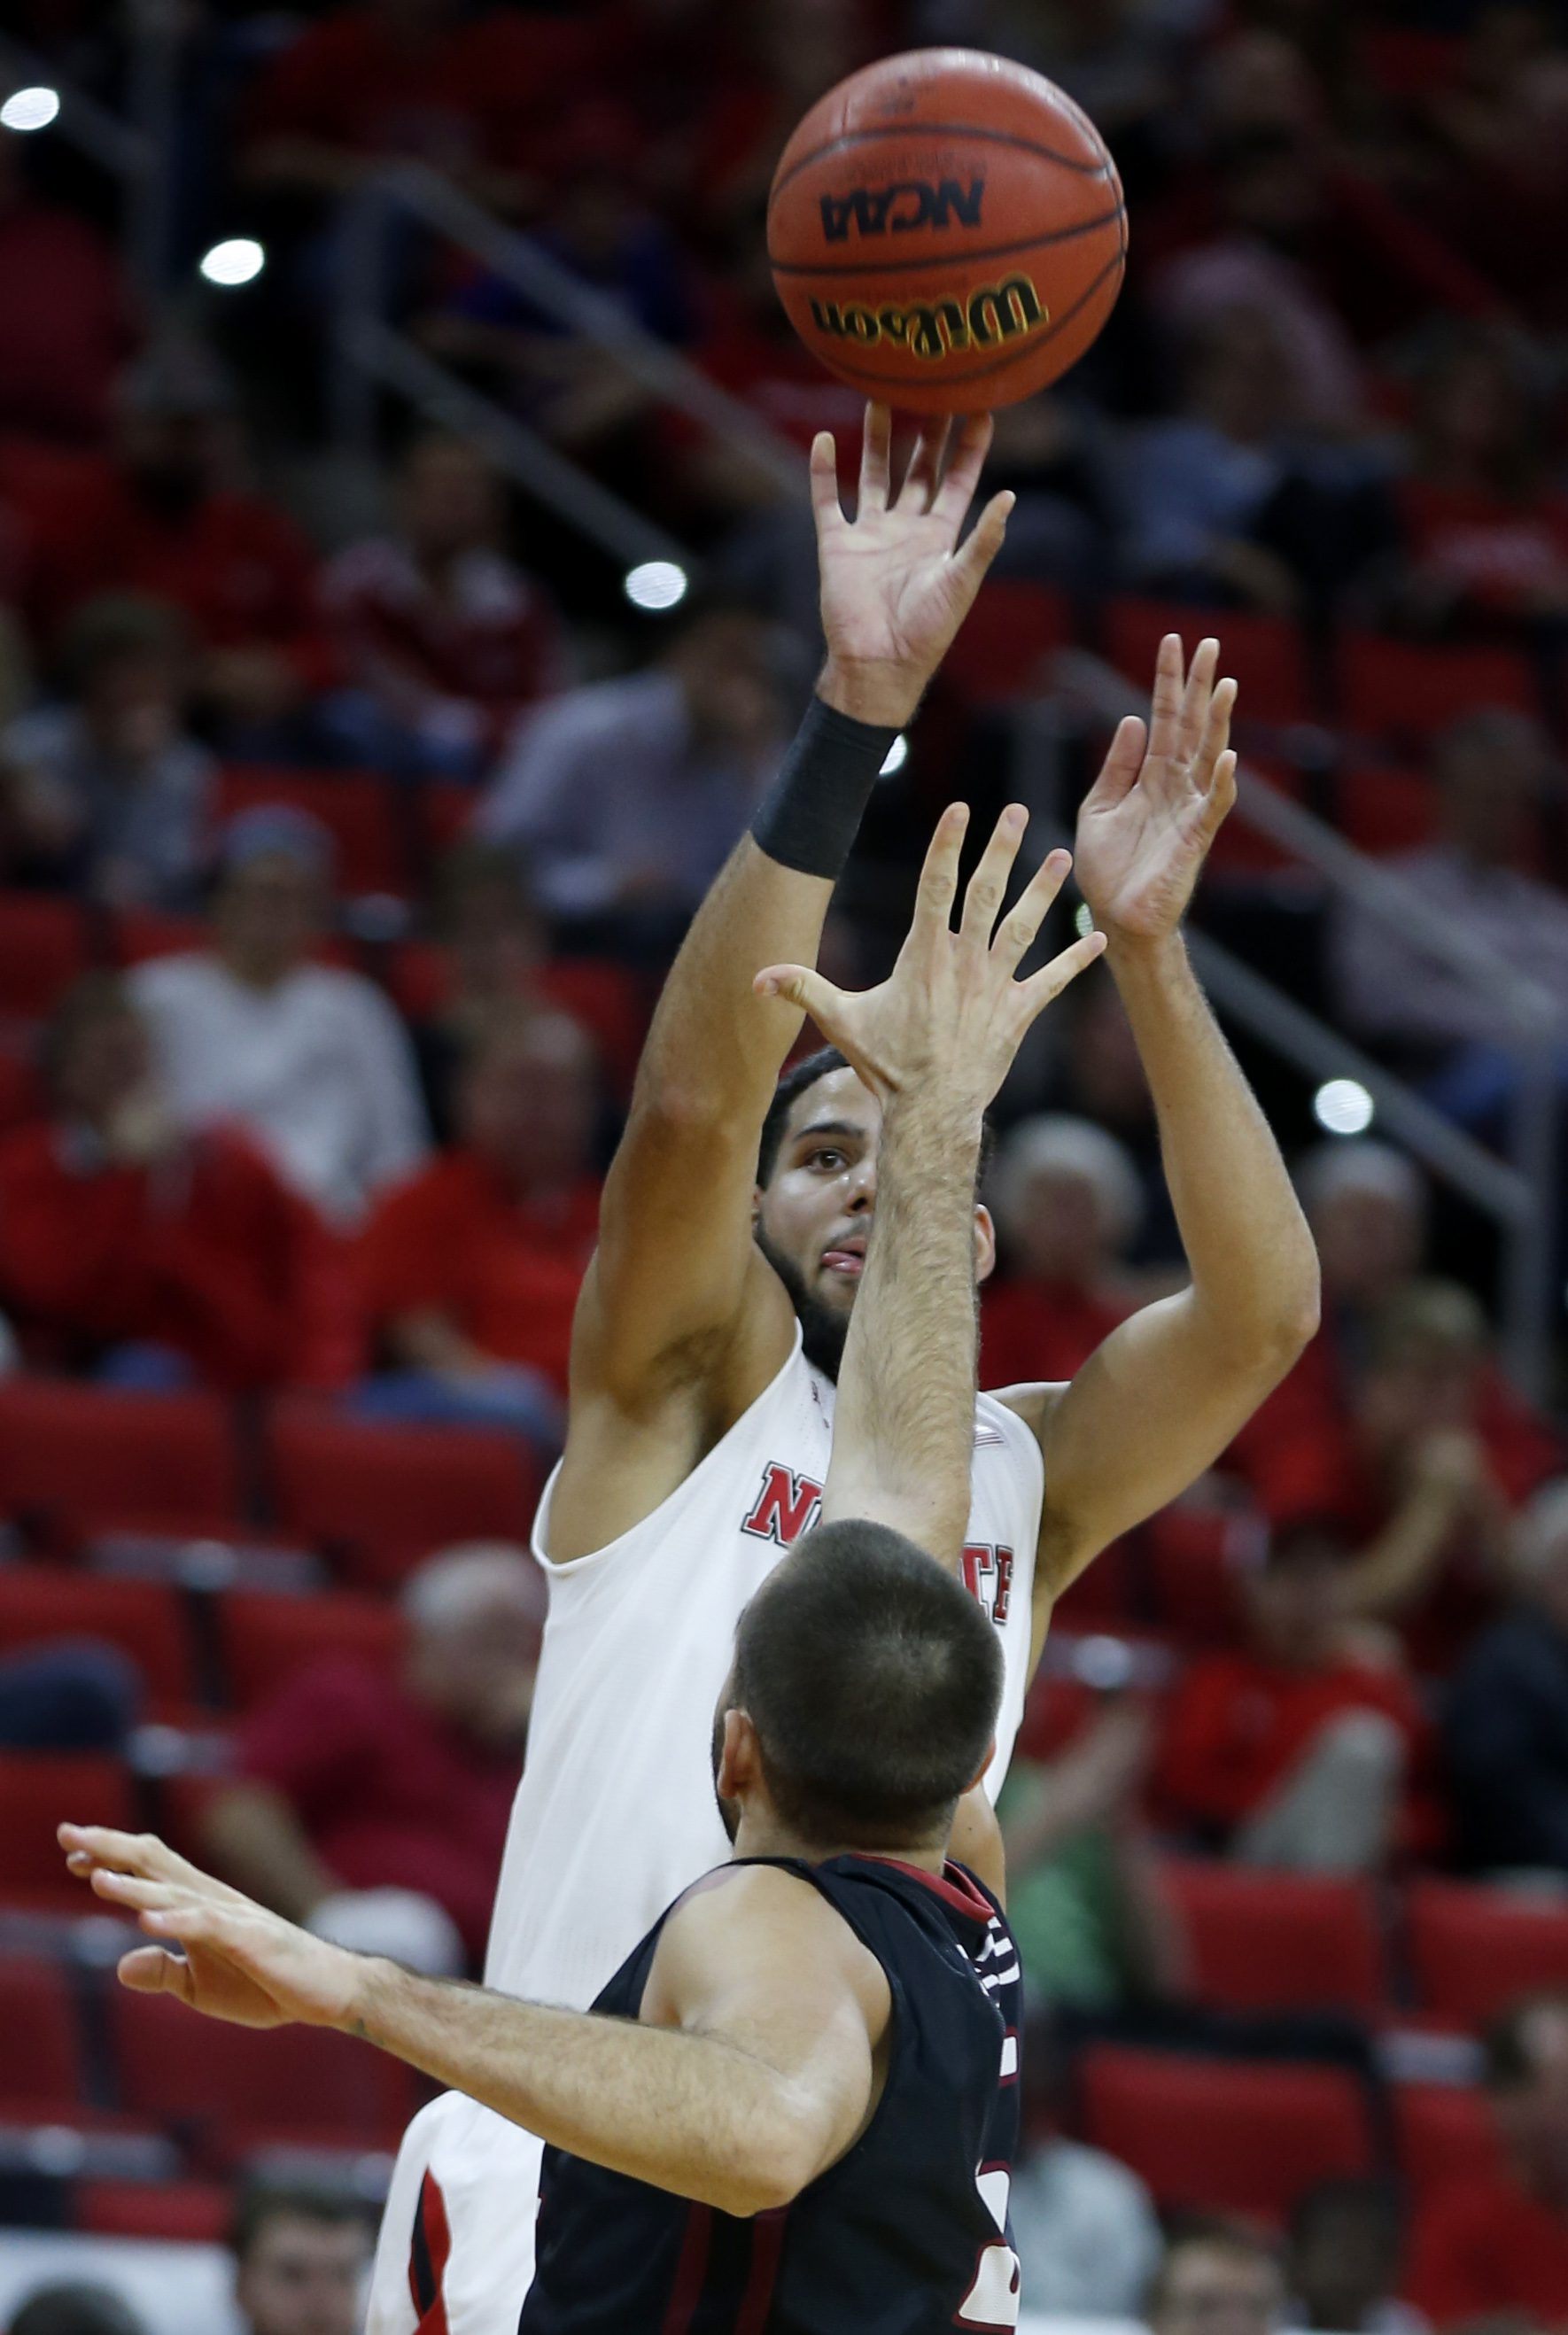 N.C. State's Caleb Martin (14) shoots as IUPUI's Leo Svete (5) defends during the first half of an NCAA college basketball game at PNC Arena in Raleigh, N.C., Wednesday, Nov. 18, 2015.  (Ethan Hyman/The News & Observer via AP)